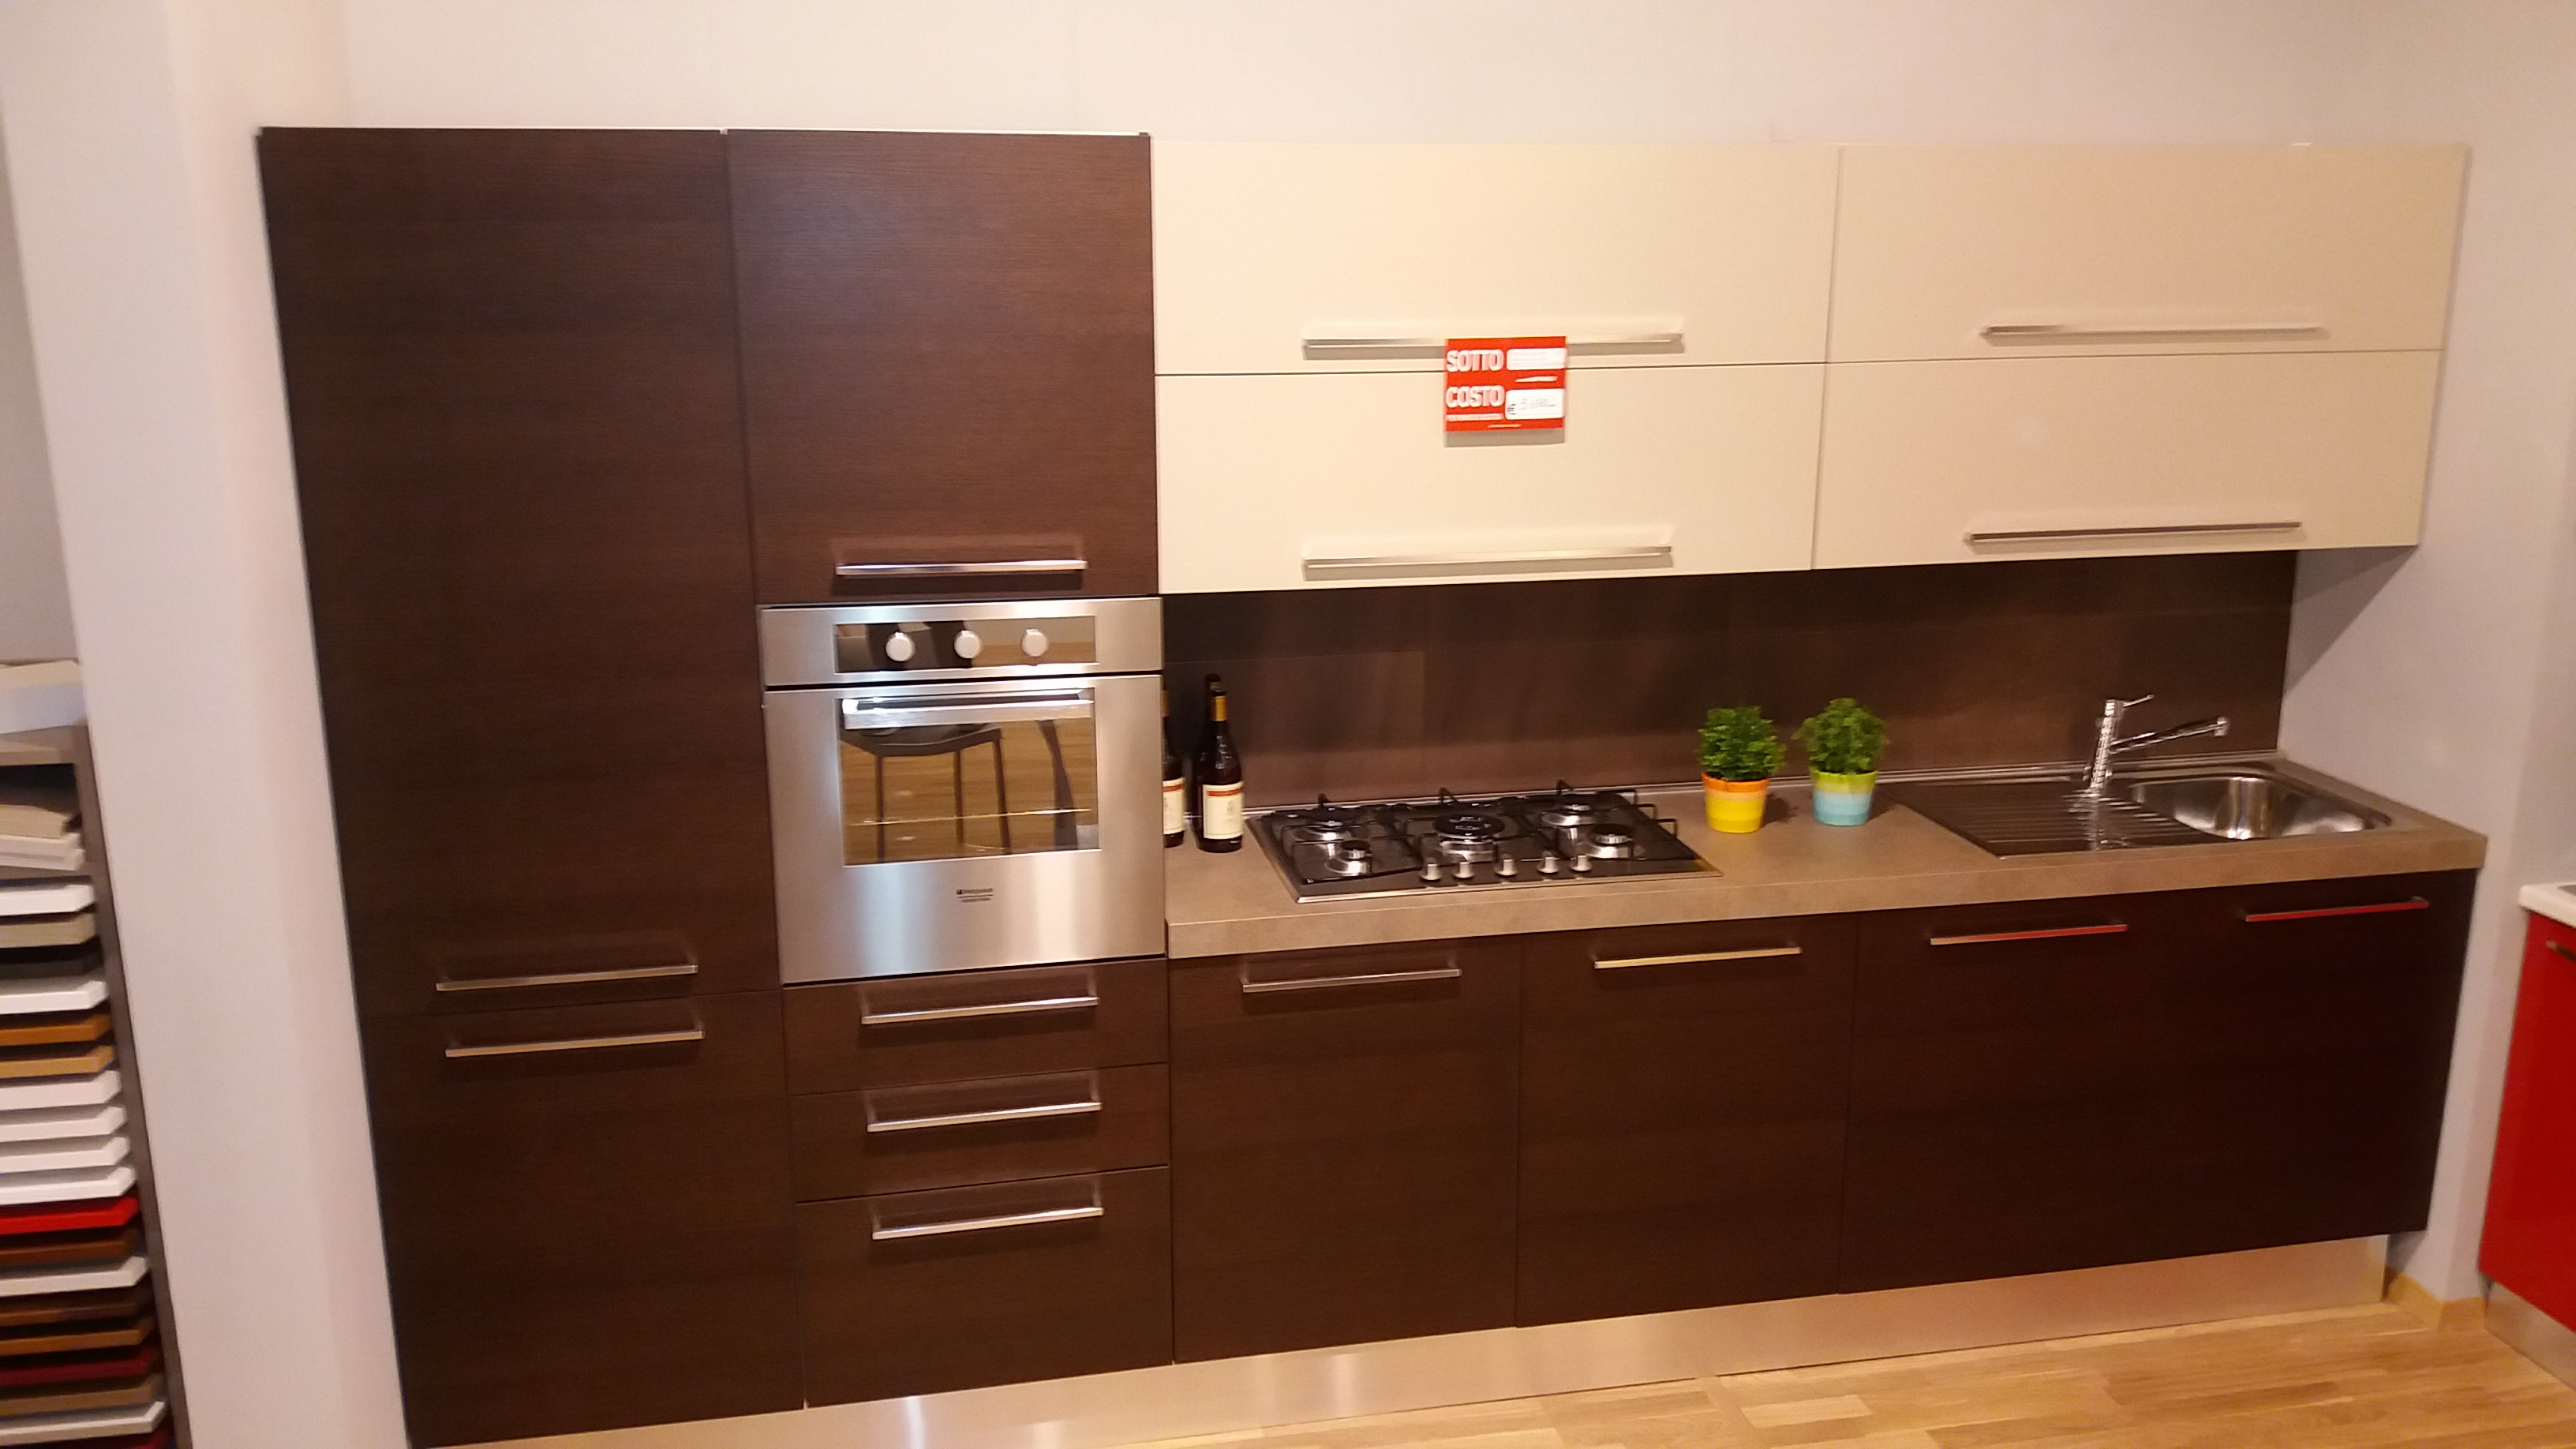 Veneta Cucine Related  &  Veneta Cucine Long Tail  #BE2B0D 3264 1836 Veneta A Cucine